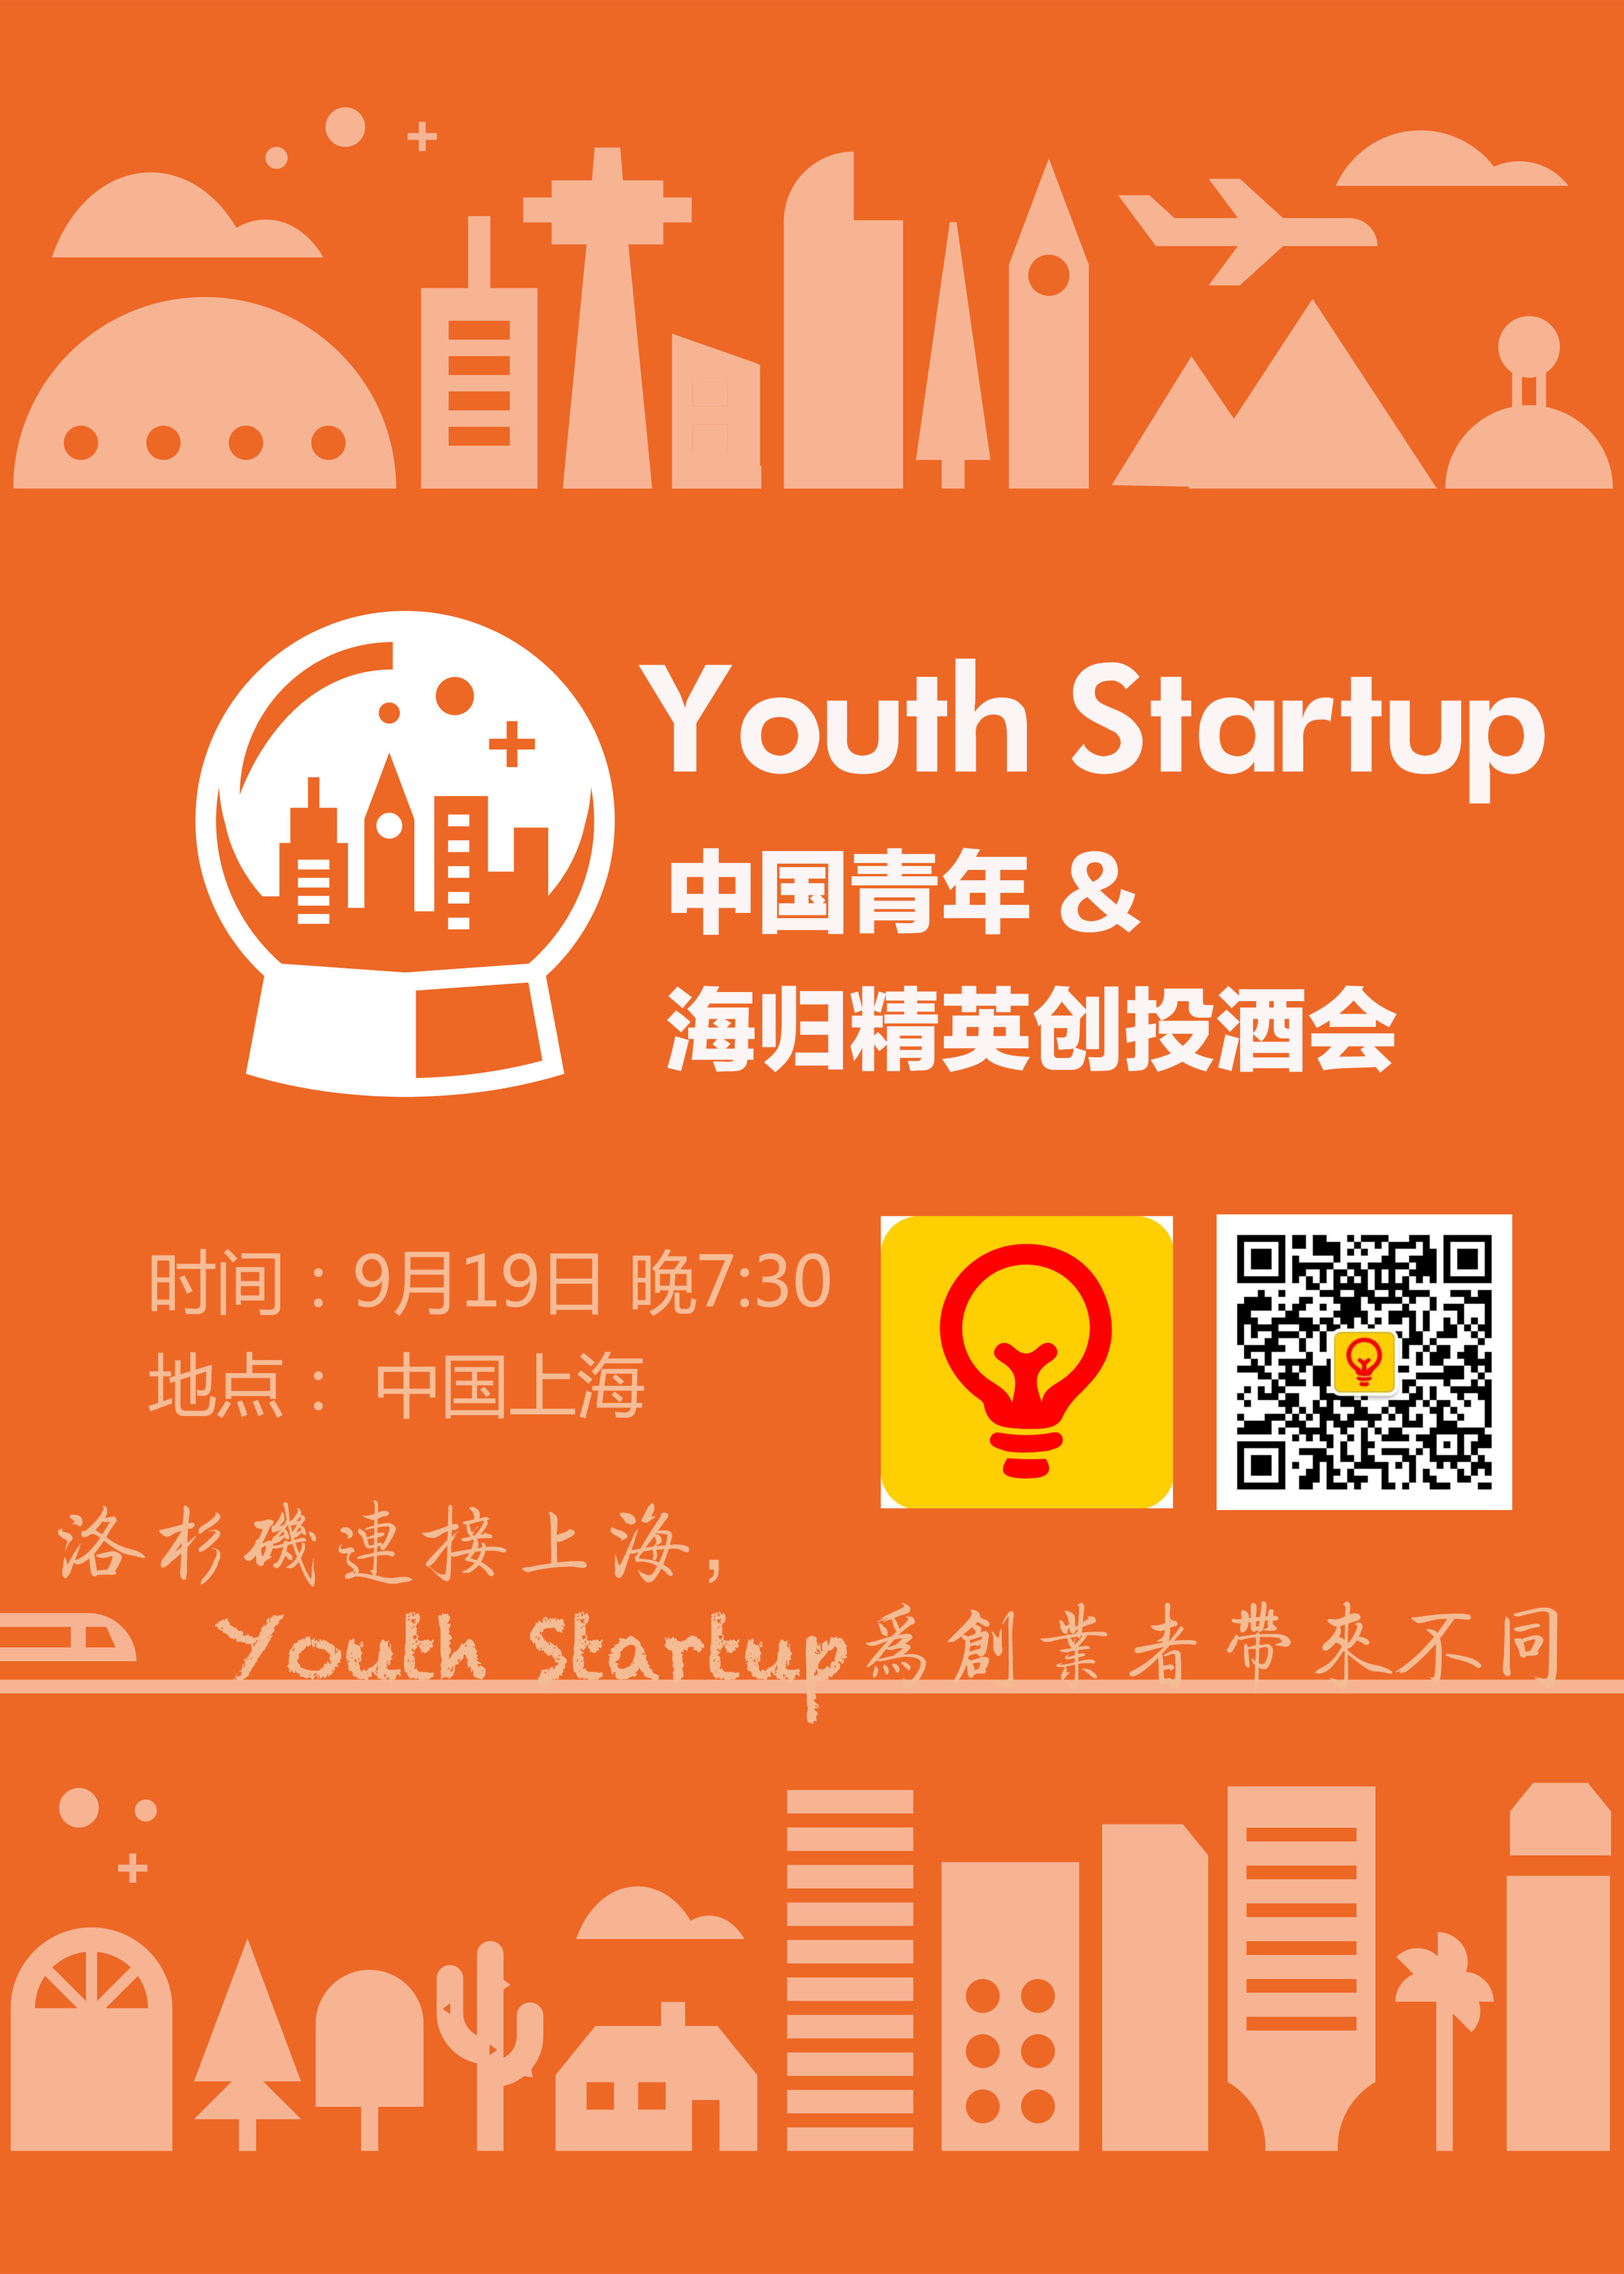 'Youth Startup' Reception